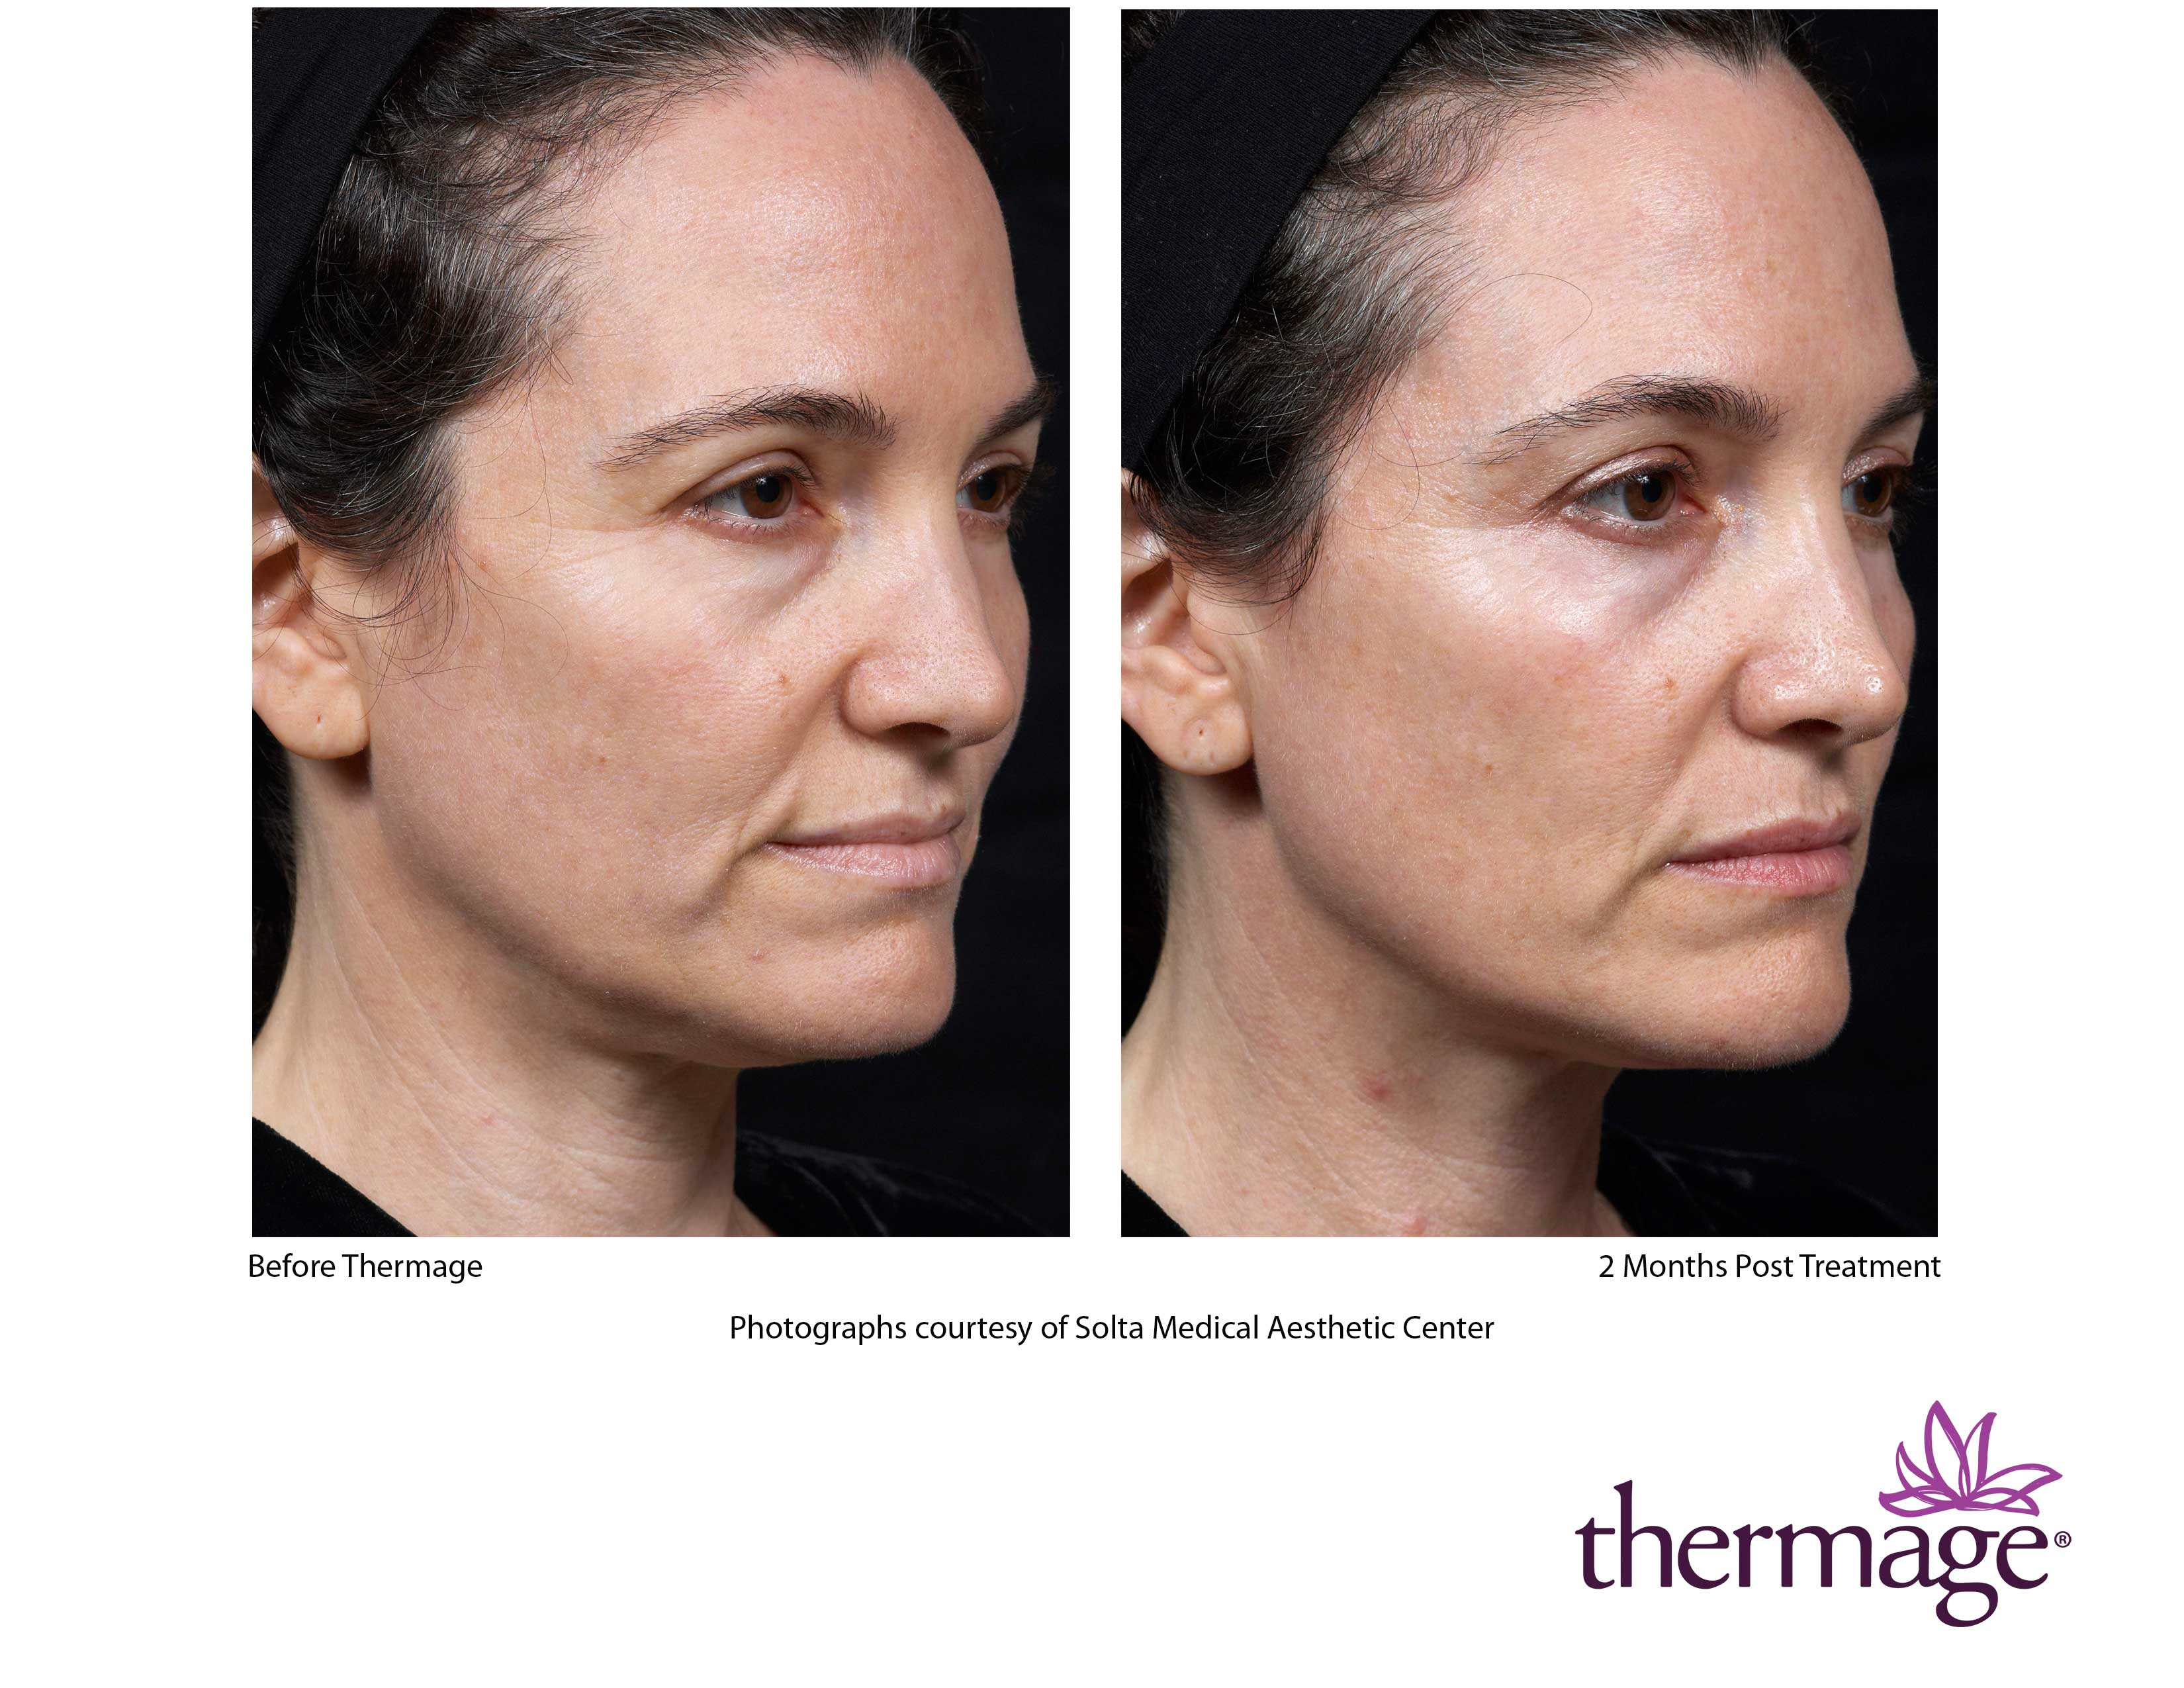 Thermage Skin Tightening Stretch Marks New York City